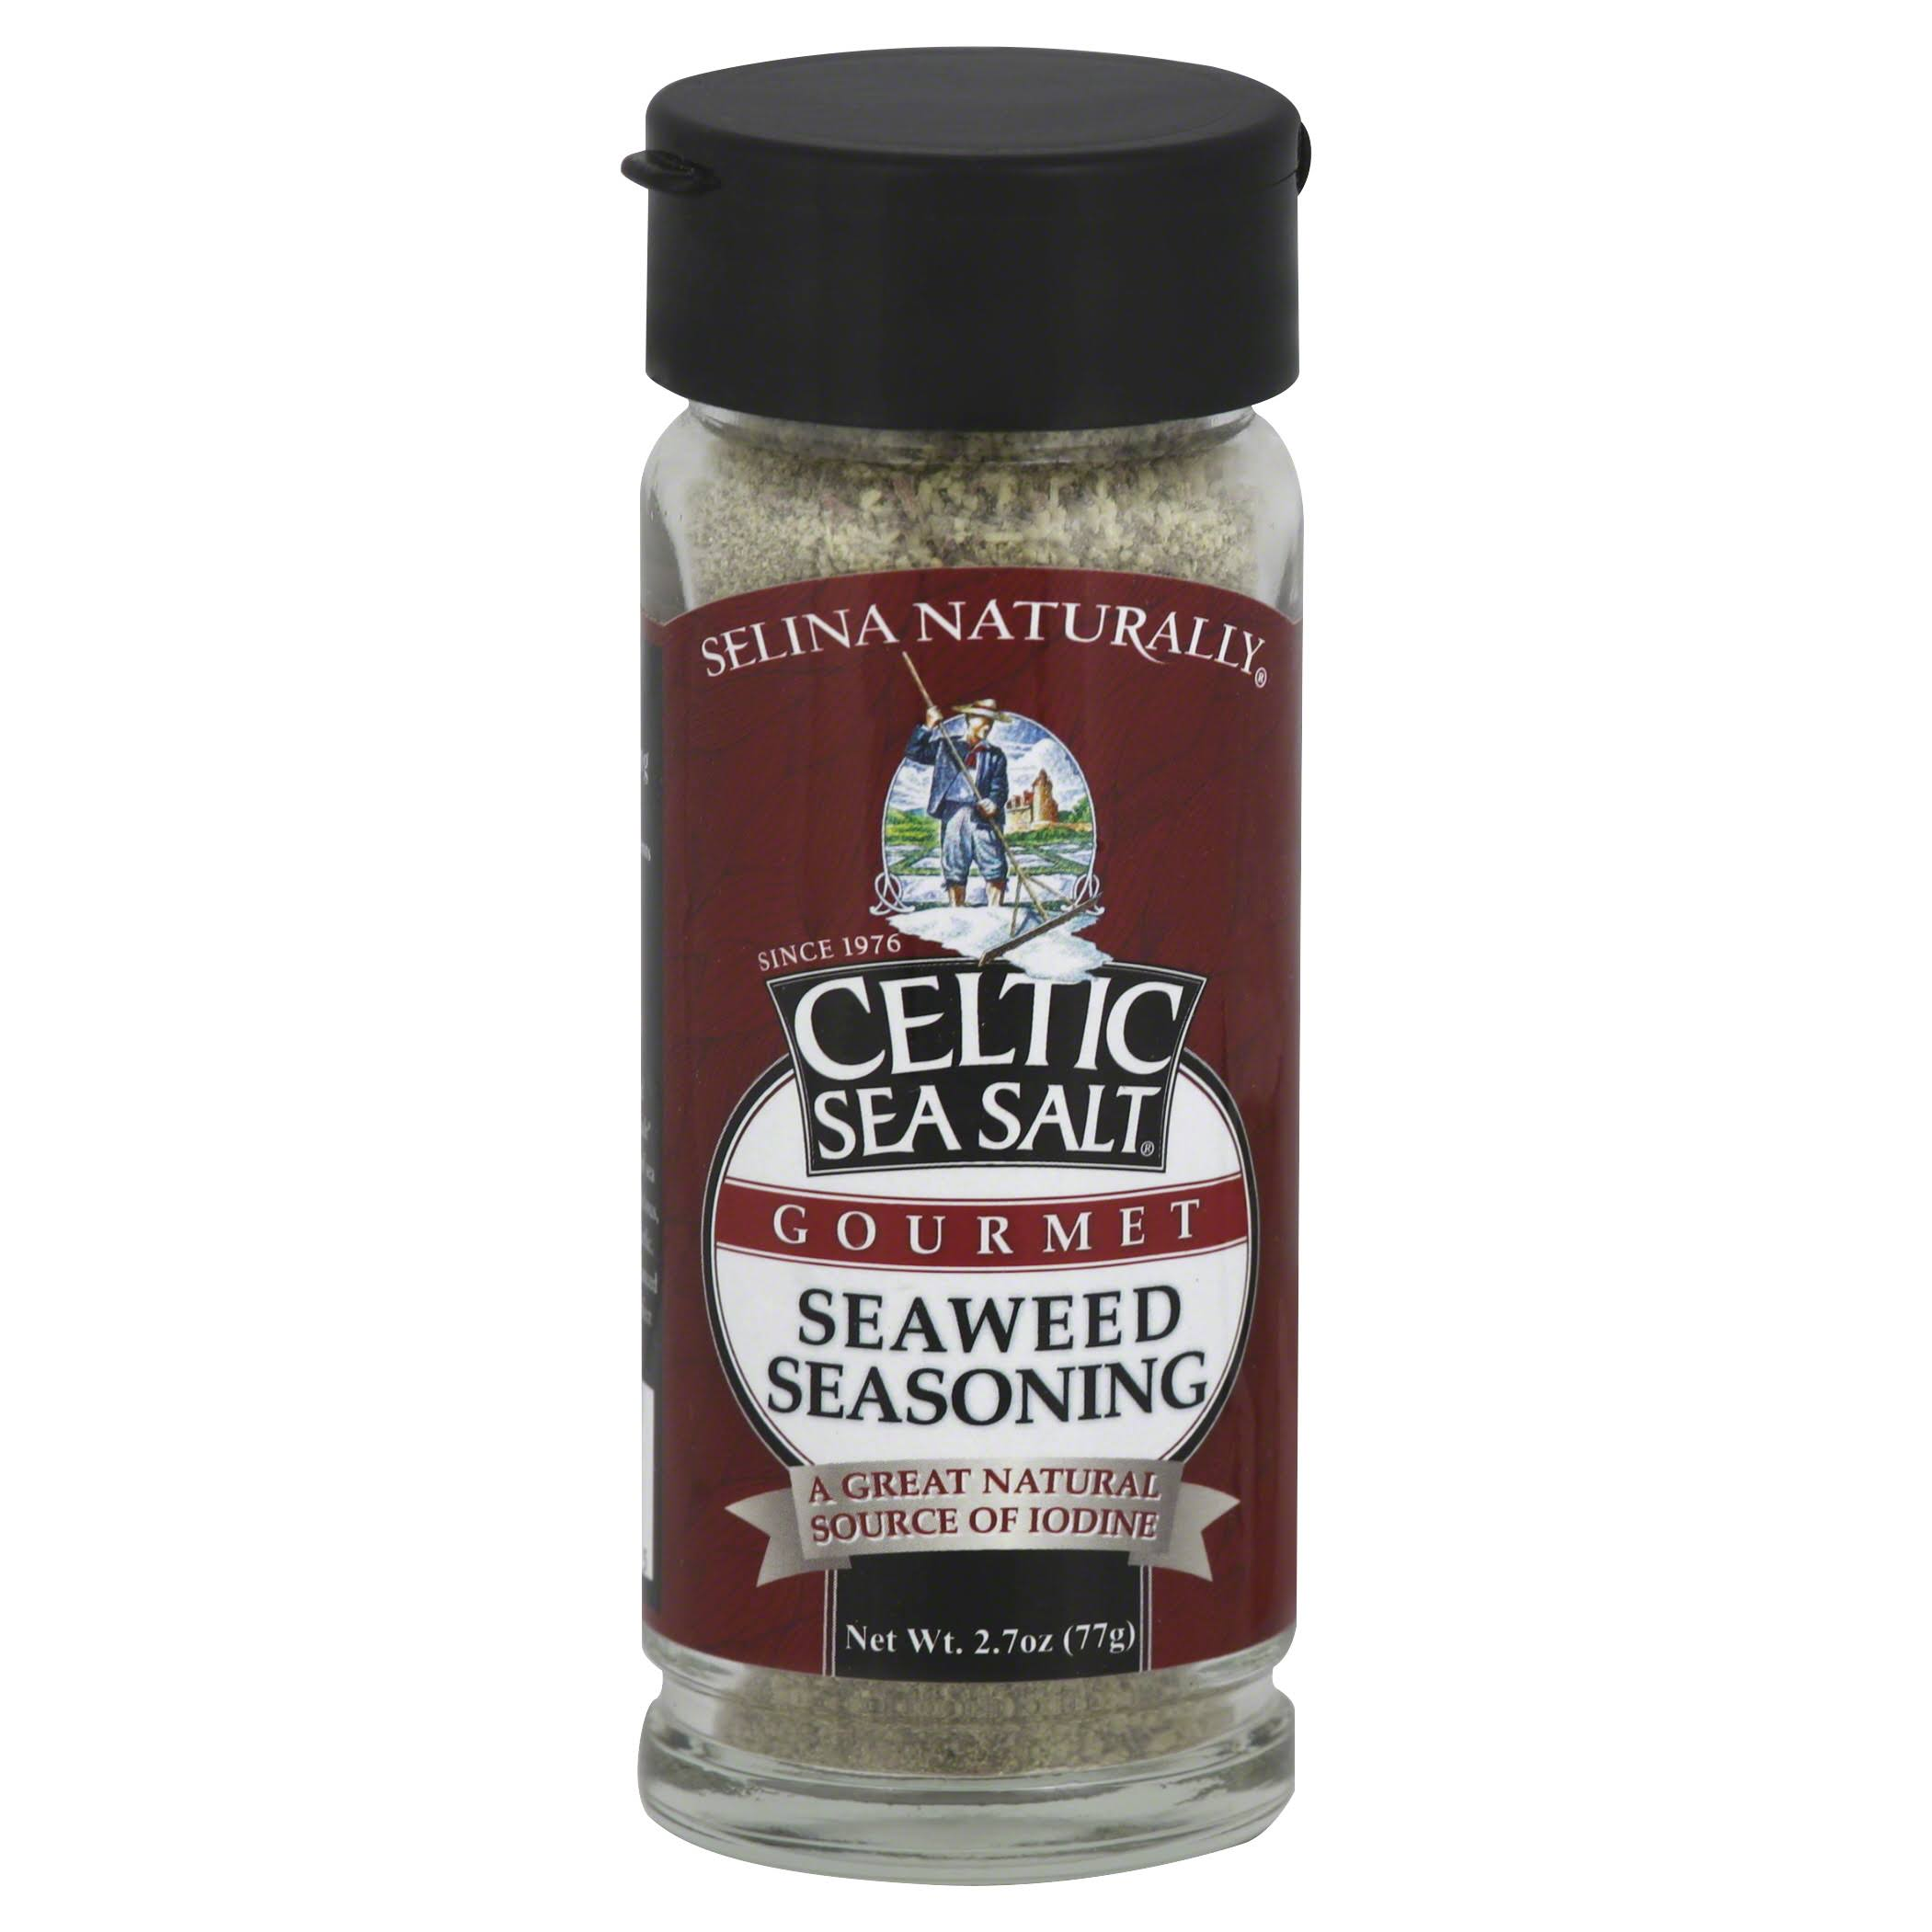 Celtic Sea Salt Gourmet Seaweed Seasoning Shaker - 2.7oz